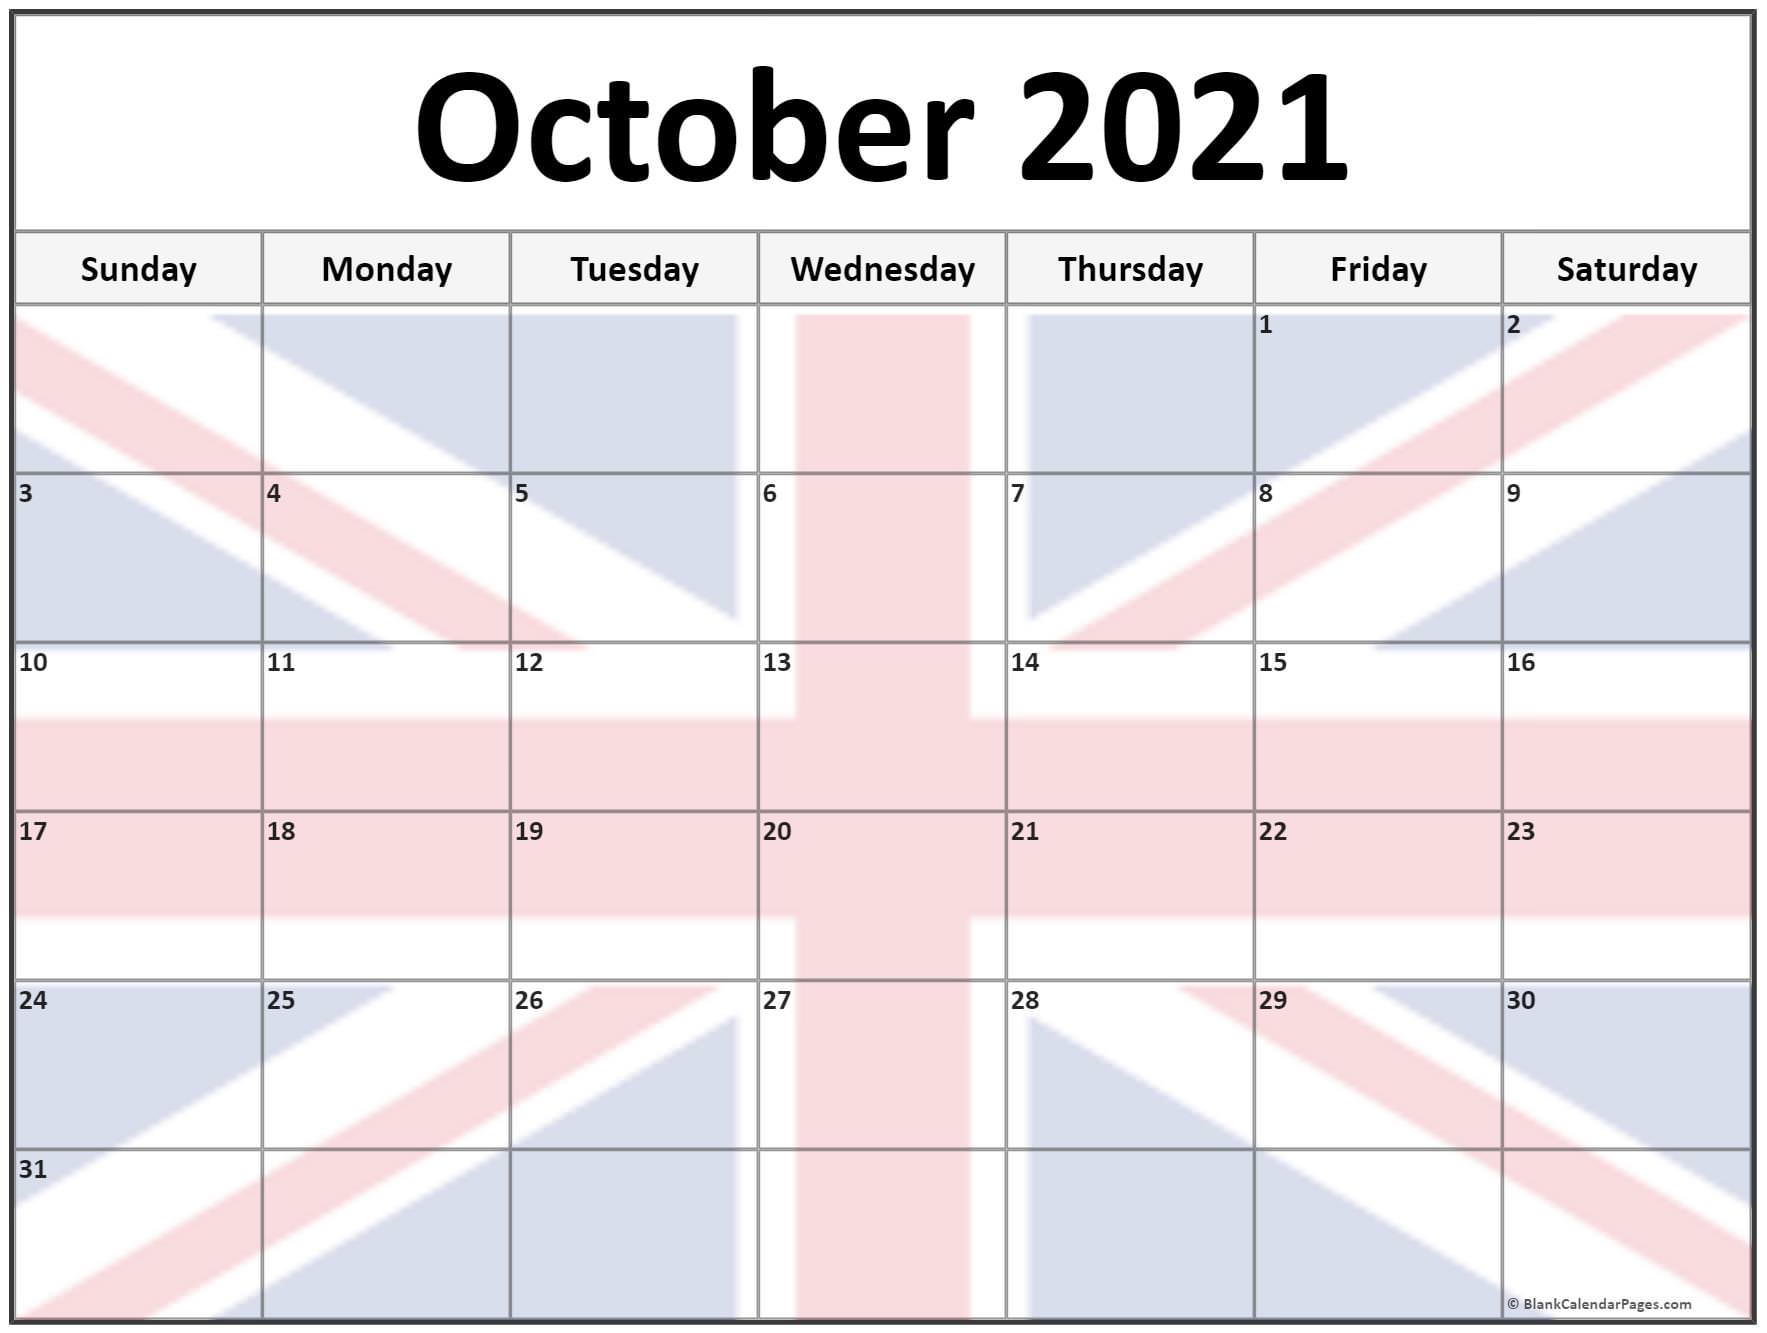 October 2021 UK flag picture calendar